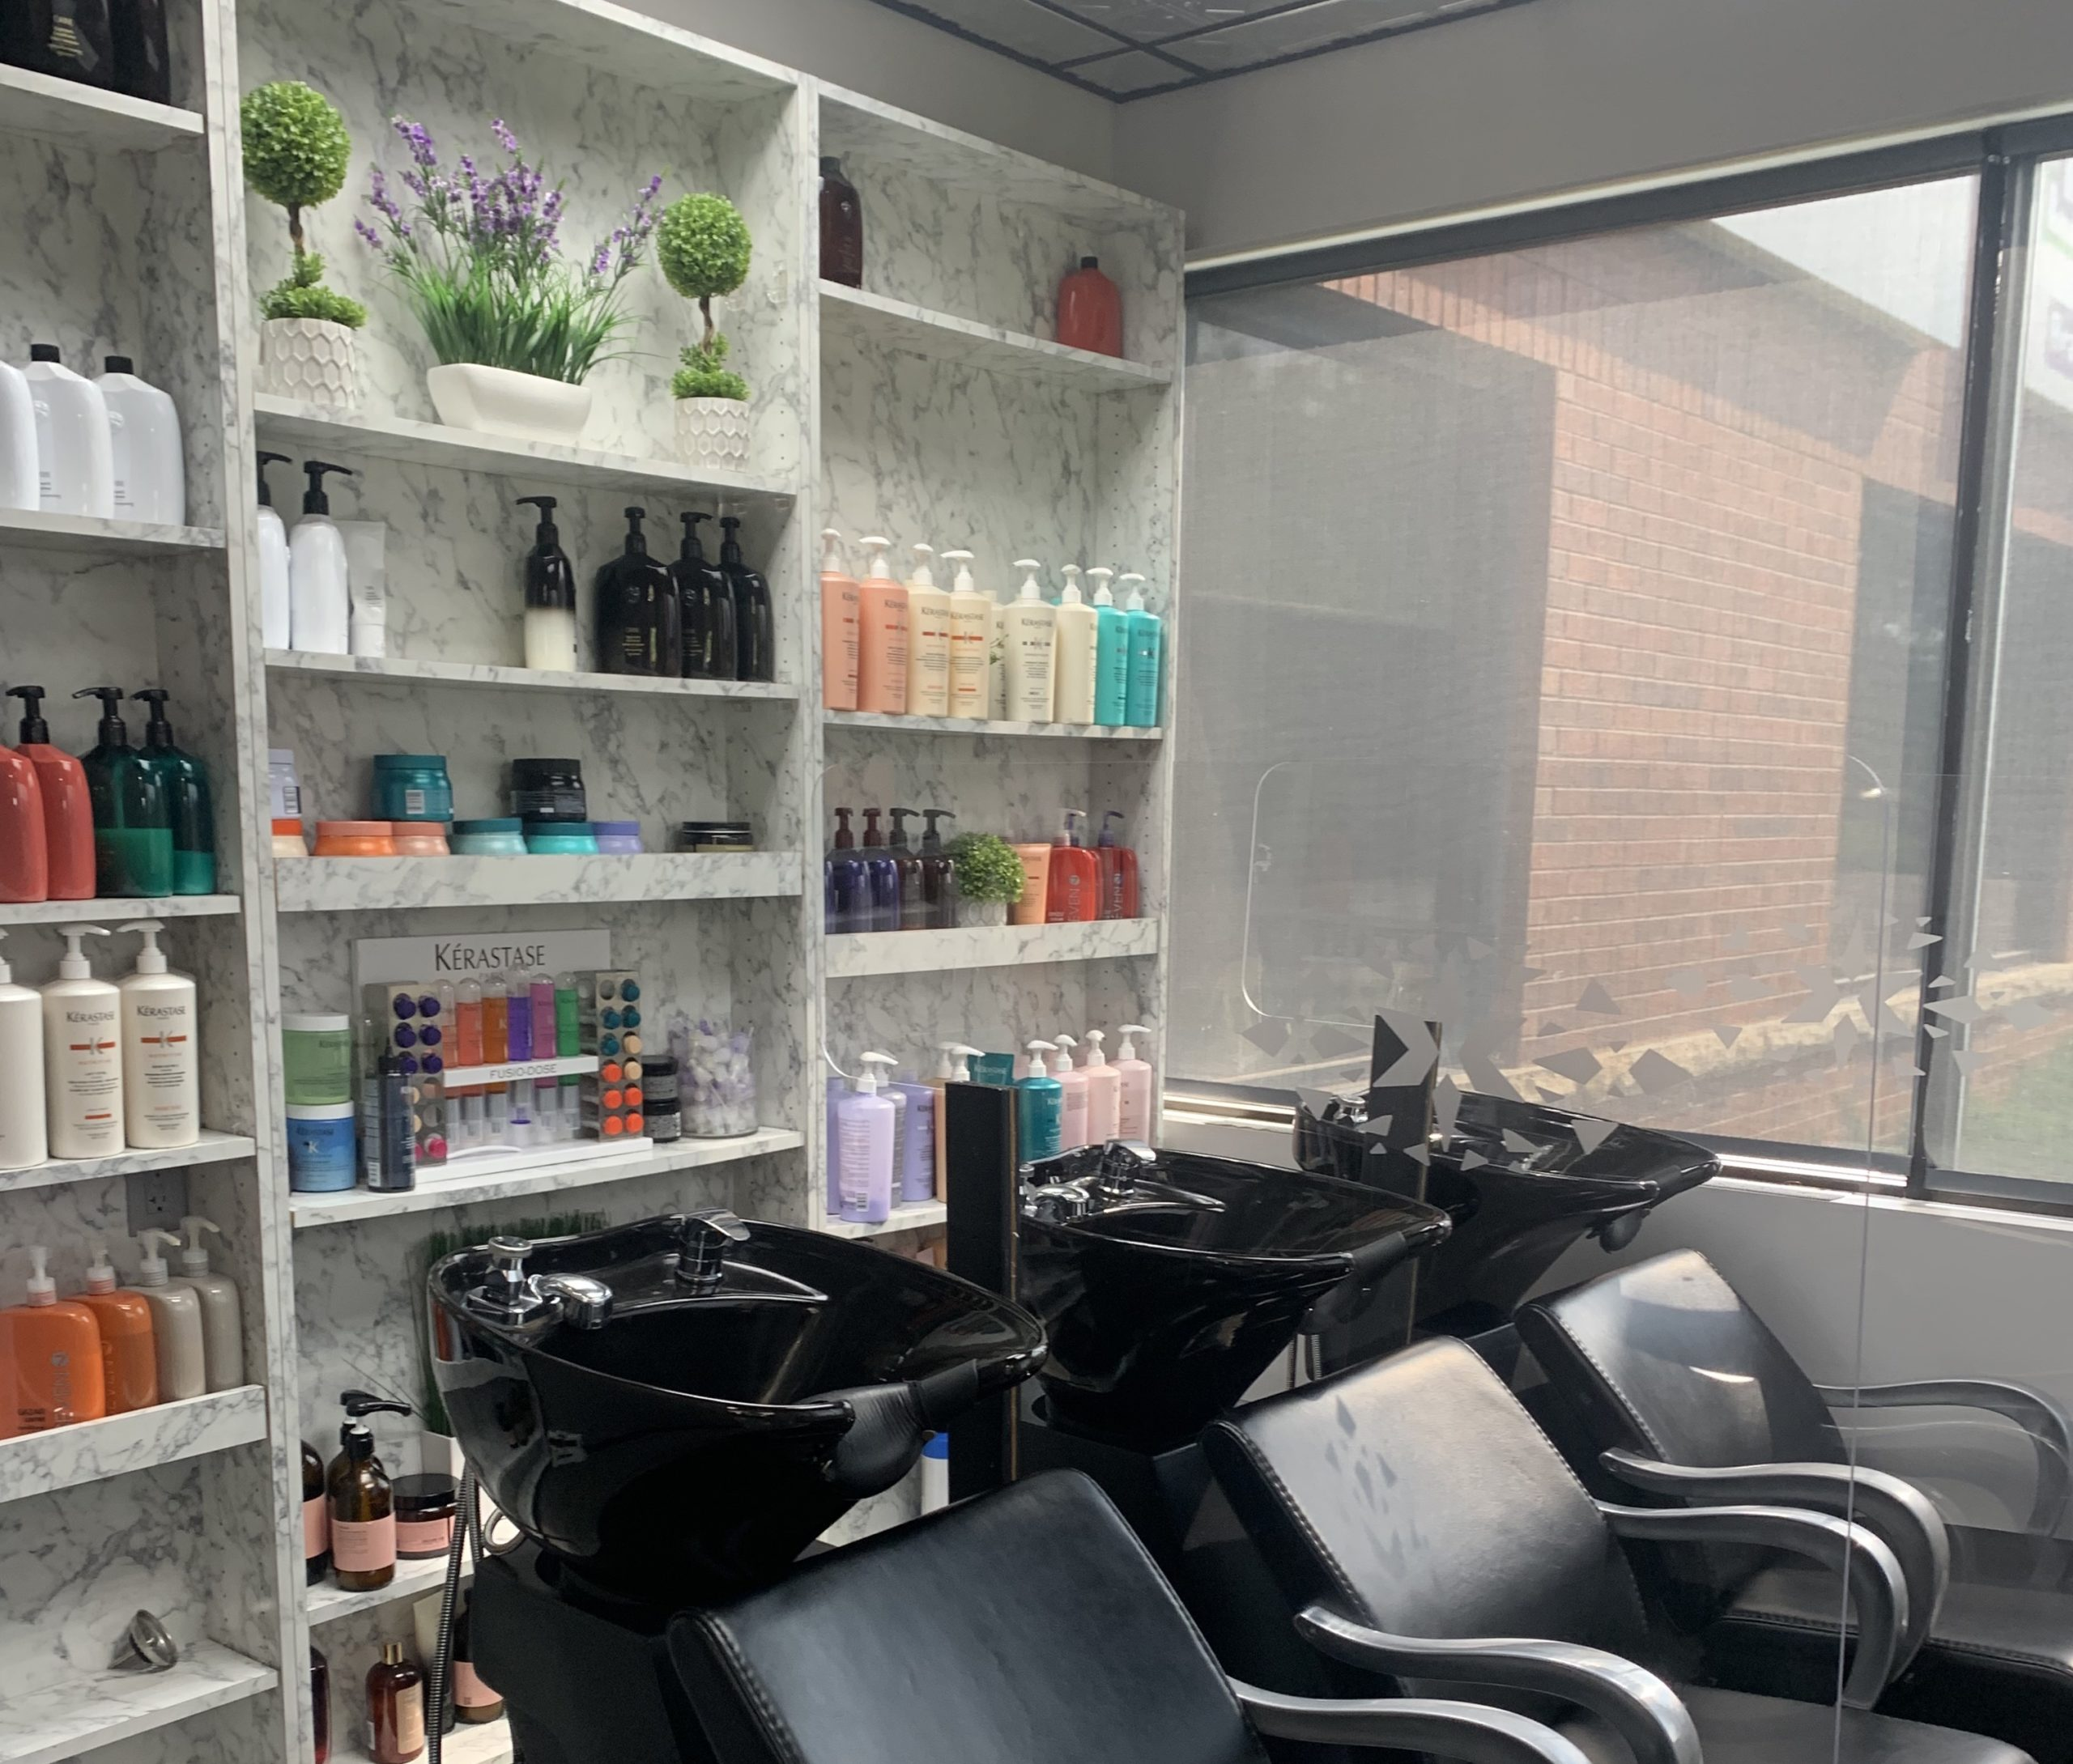 hair care products in a salon